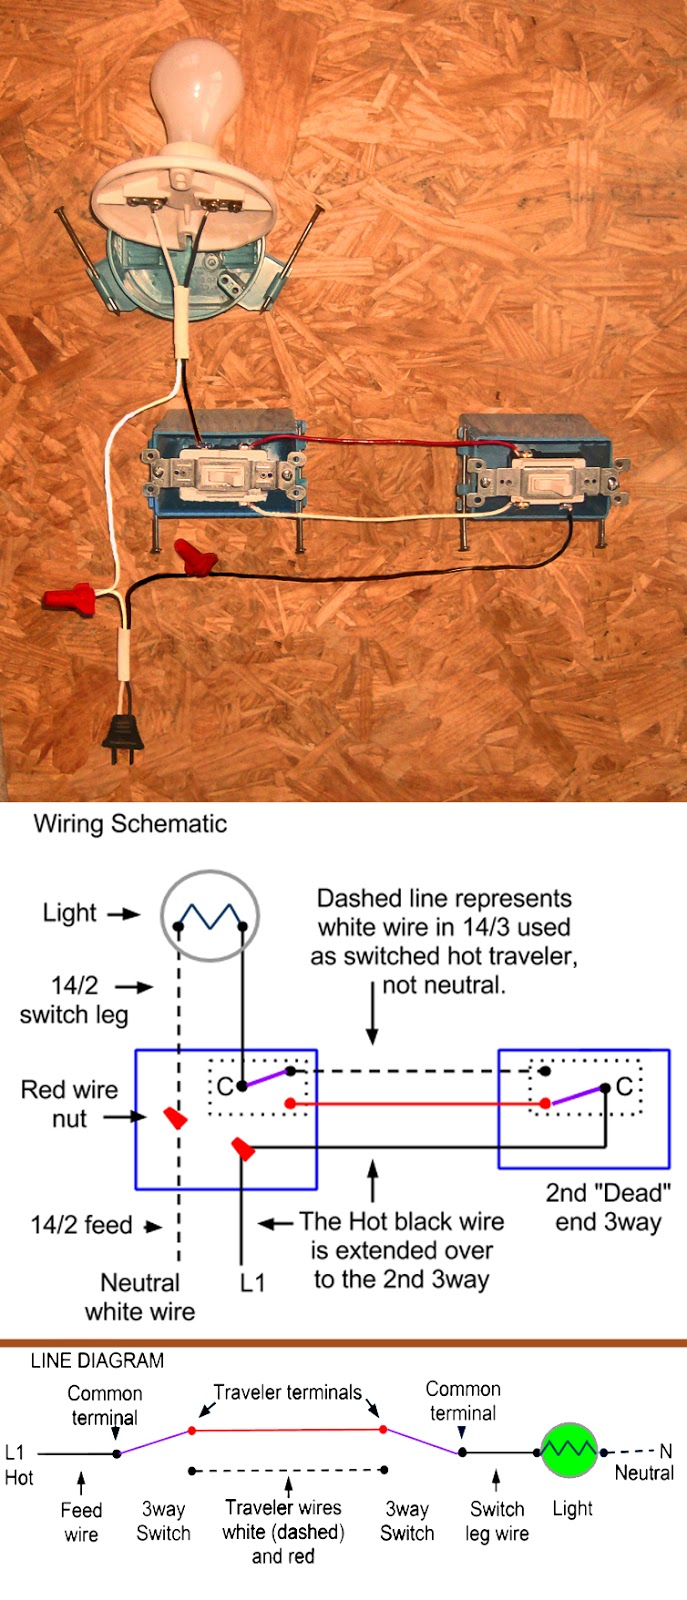 Wiring Diagram Switch Leg : Way switch wiring methods dead end and radical s